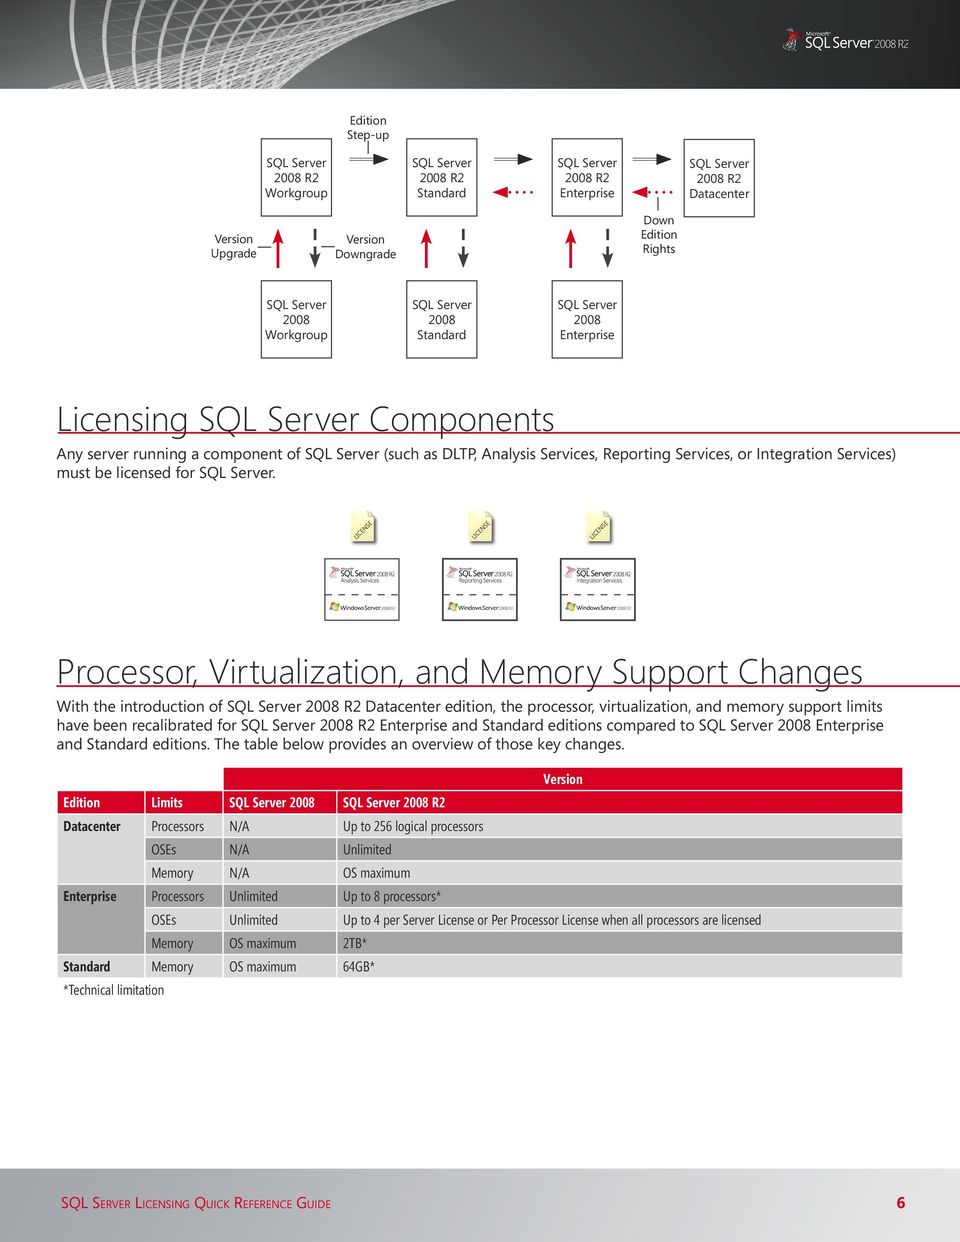 Processor, Virtualization, and Memory Support Changes With the introduction of 2008 R2 Datacenter edition, the processor, virtualization, and memory support limits have been recalibrated for 2008 R2